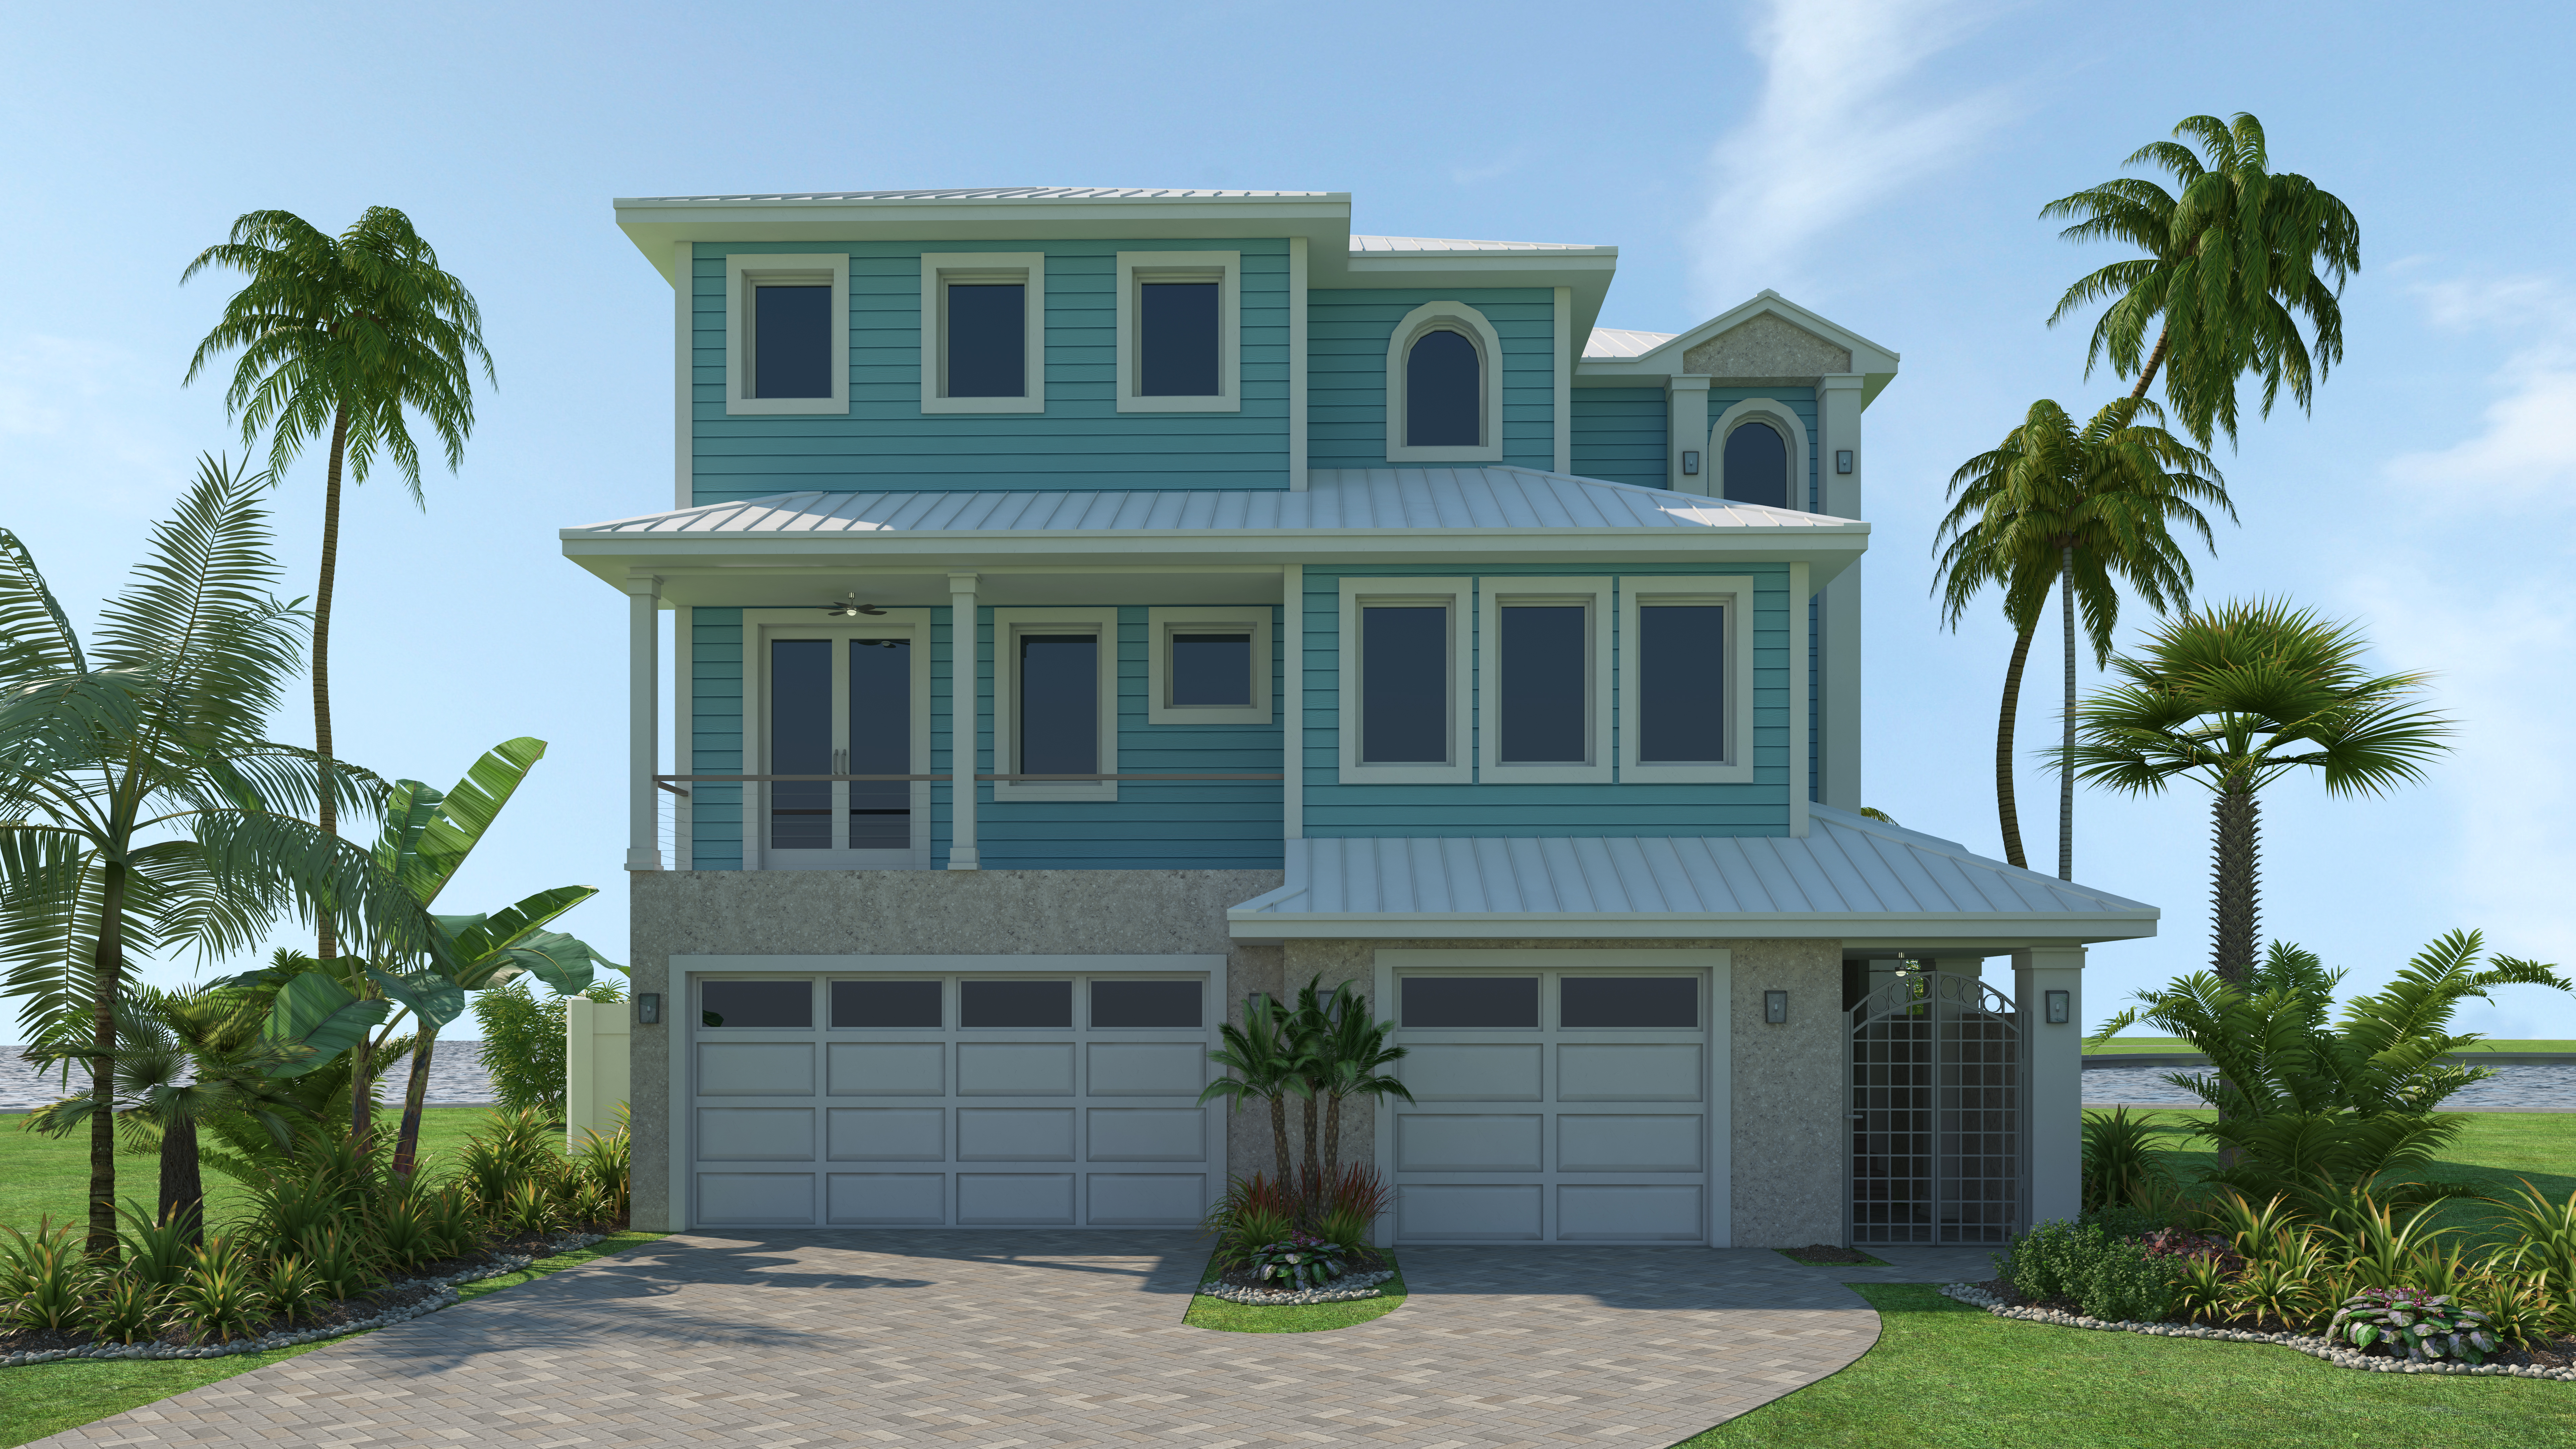 Beautiful 3 Story Beachfront